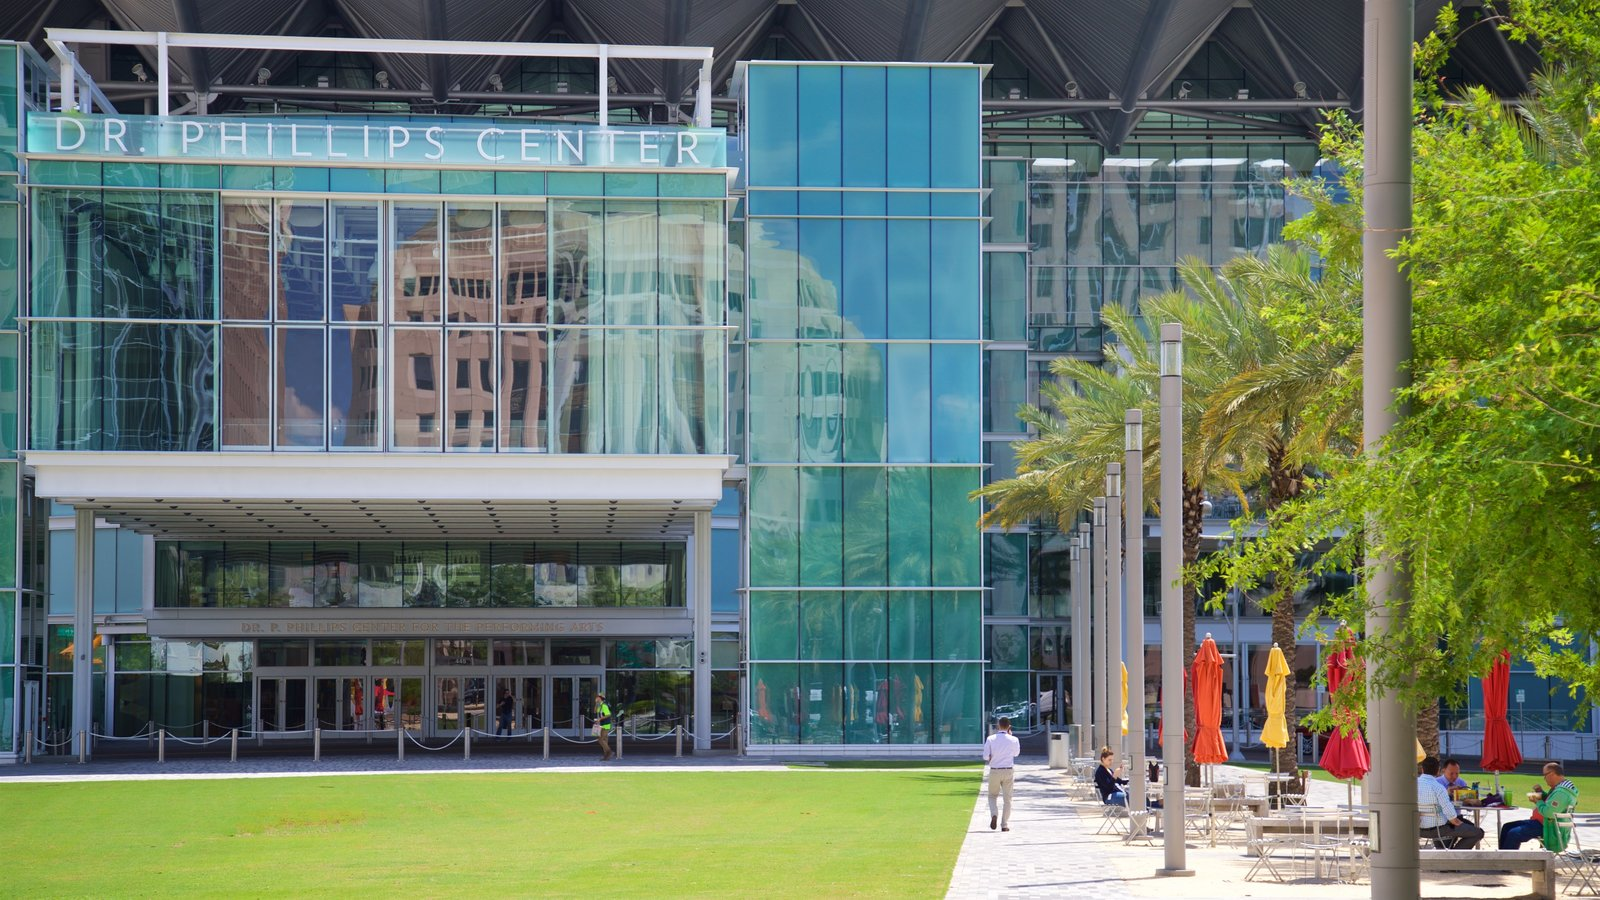 Dr. Phillips Center for the Performing Arts which includes modern architecture